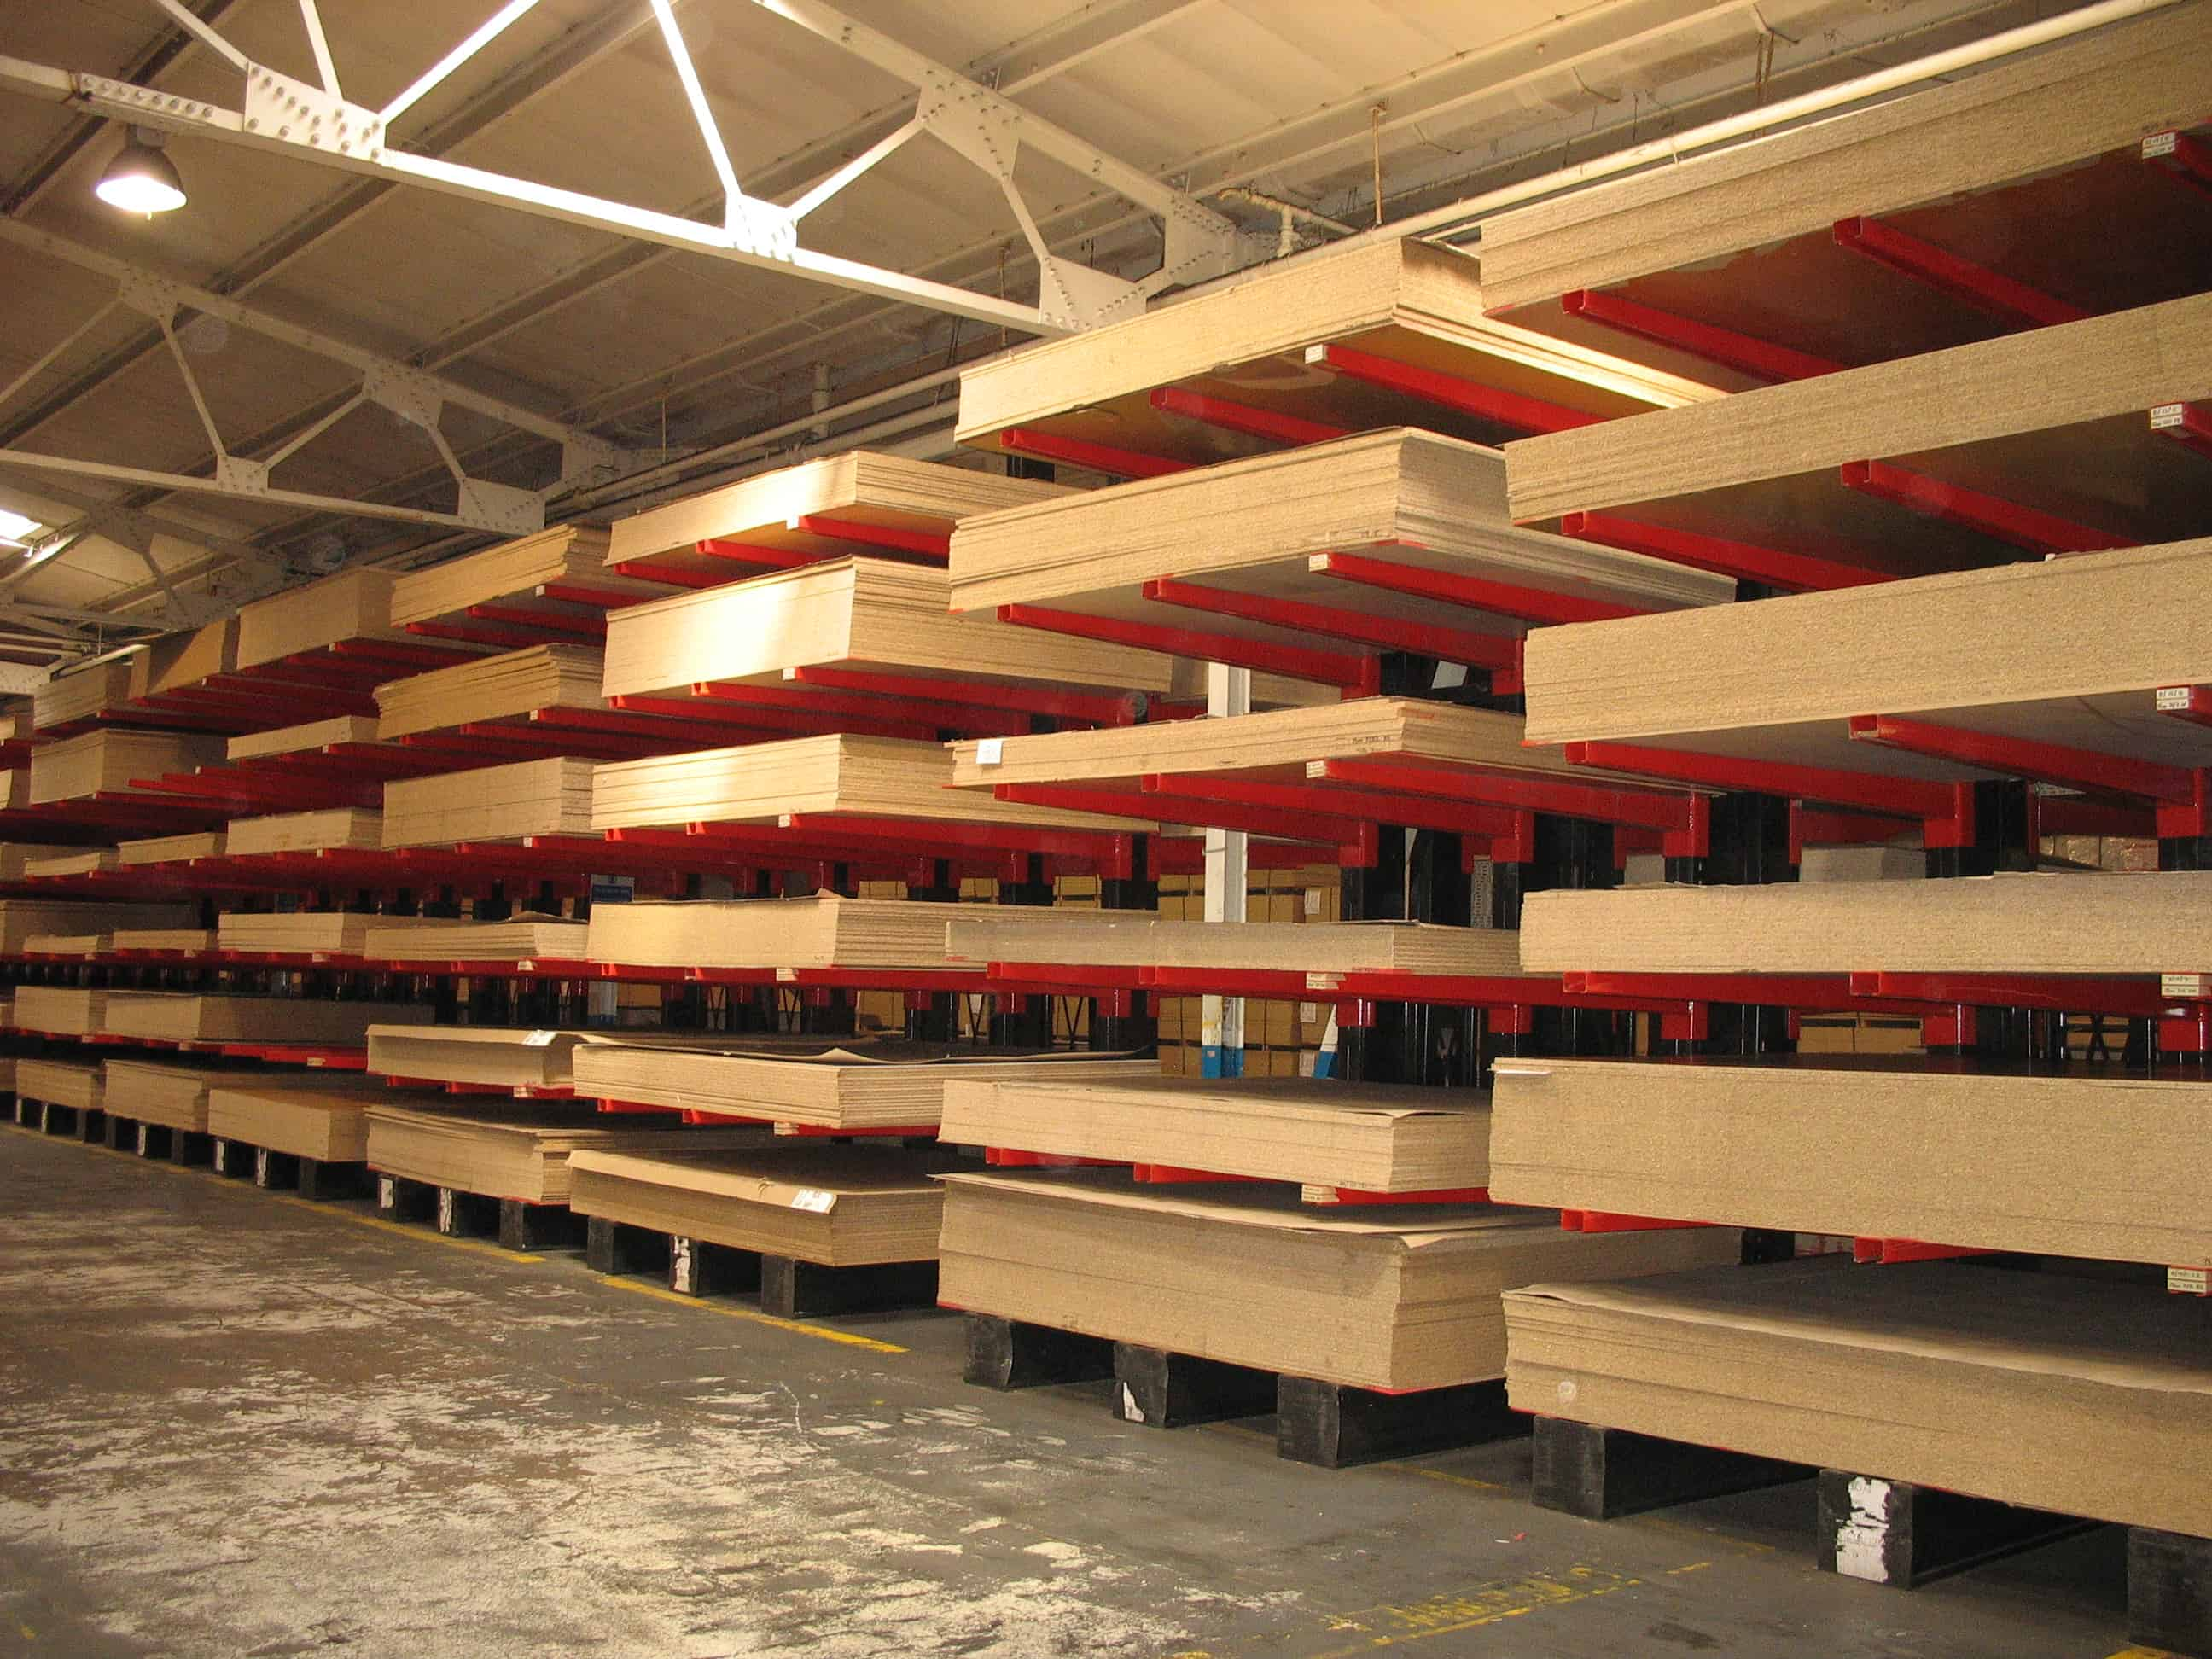 The Furniture and Joinery sector commonly utilise Cantilever Racking for storing Panel related products